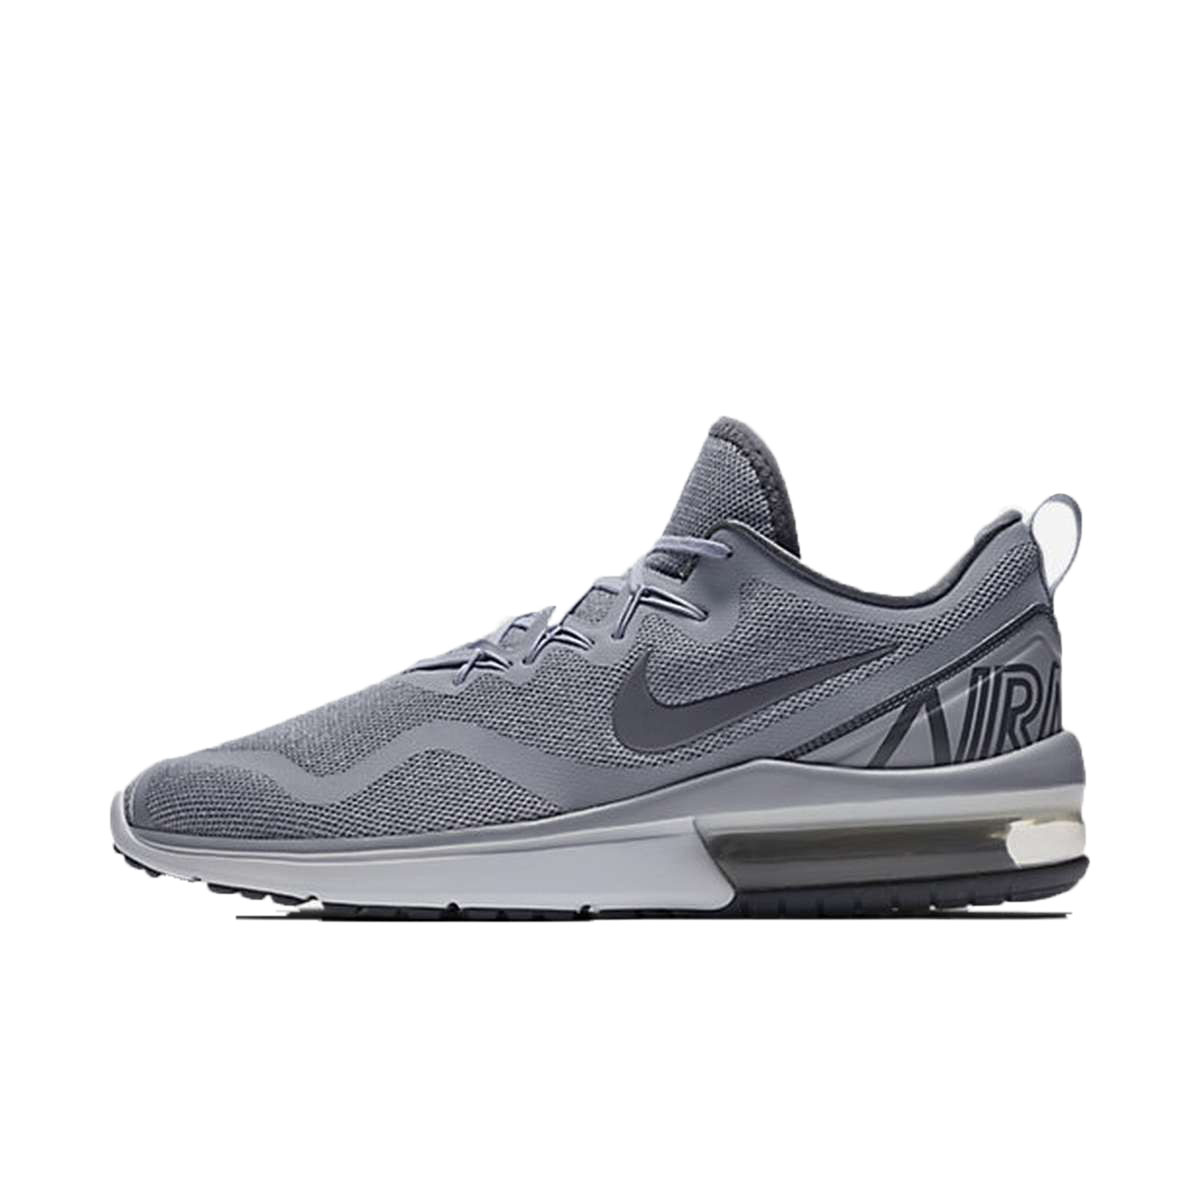 Nike Men's Air Max Fury Running Shoe